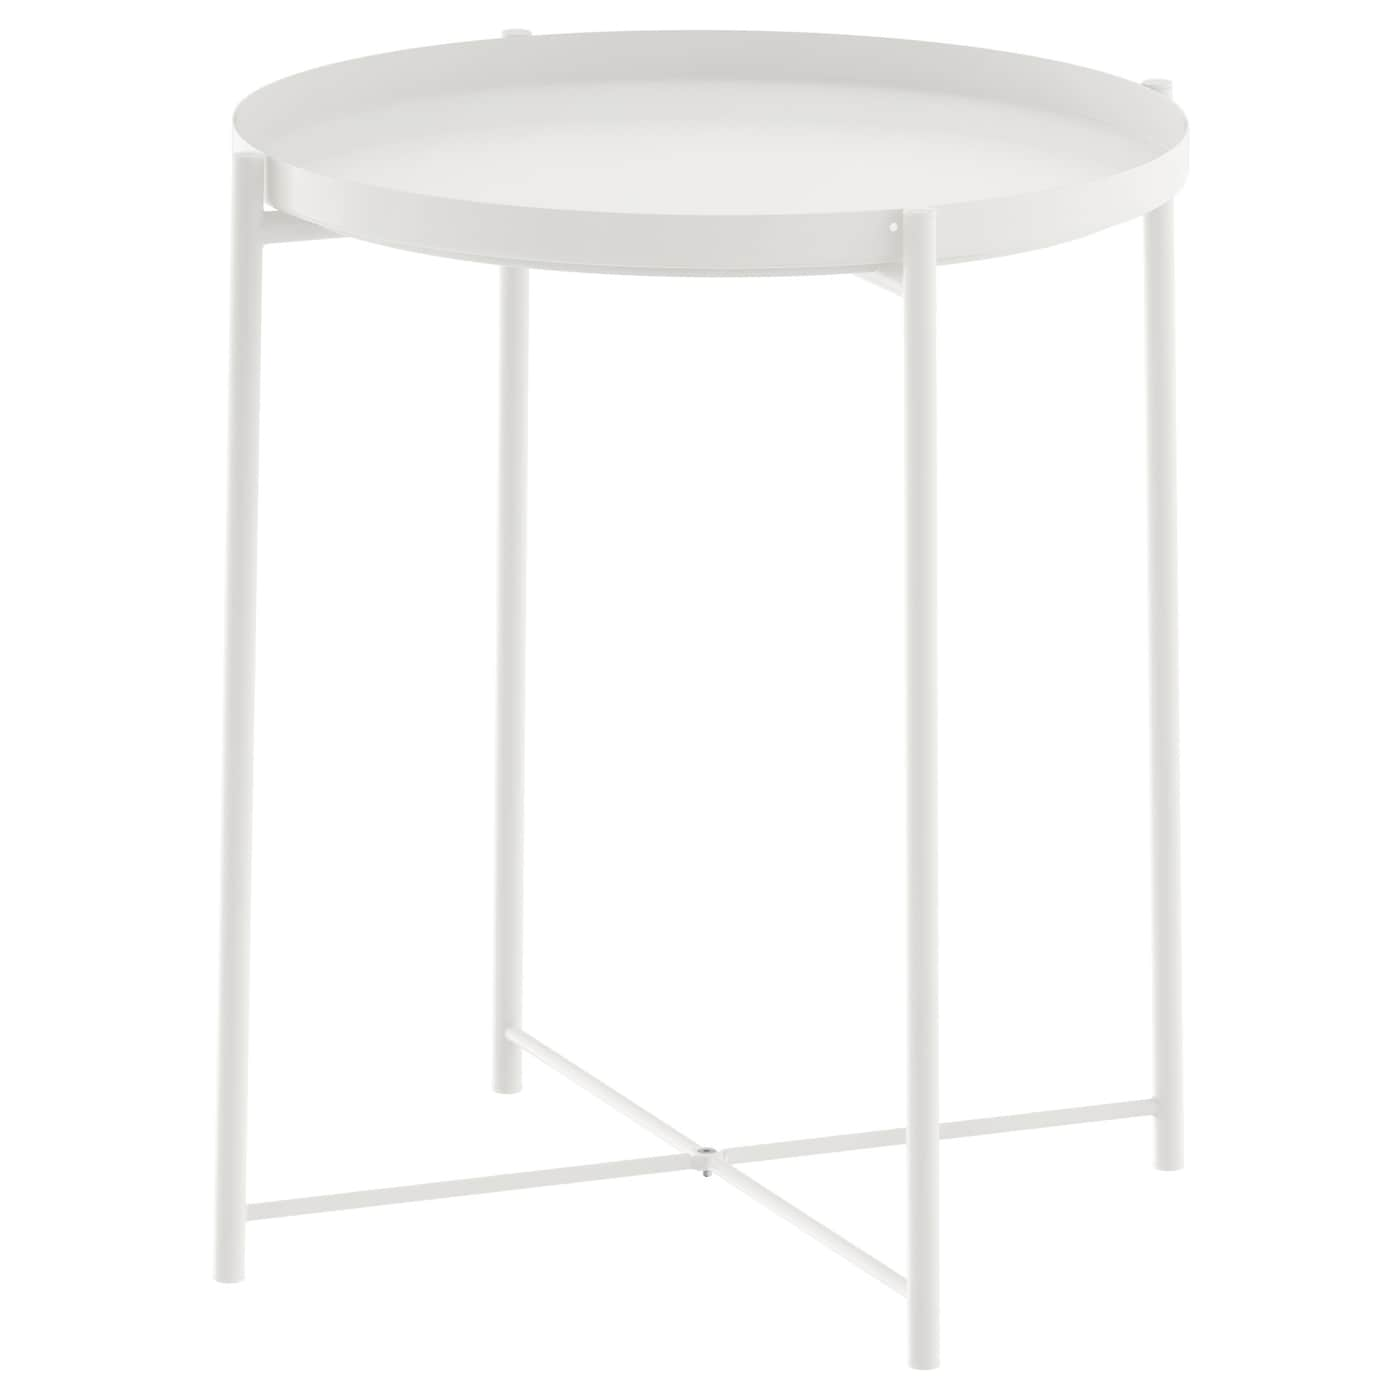 Ikea Gladom Tray Table You Can Use The Removable For Serving